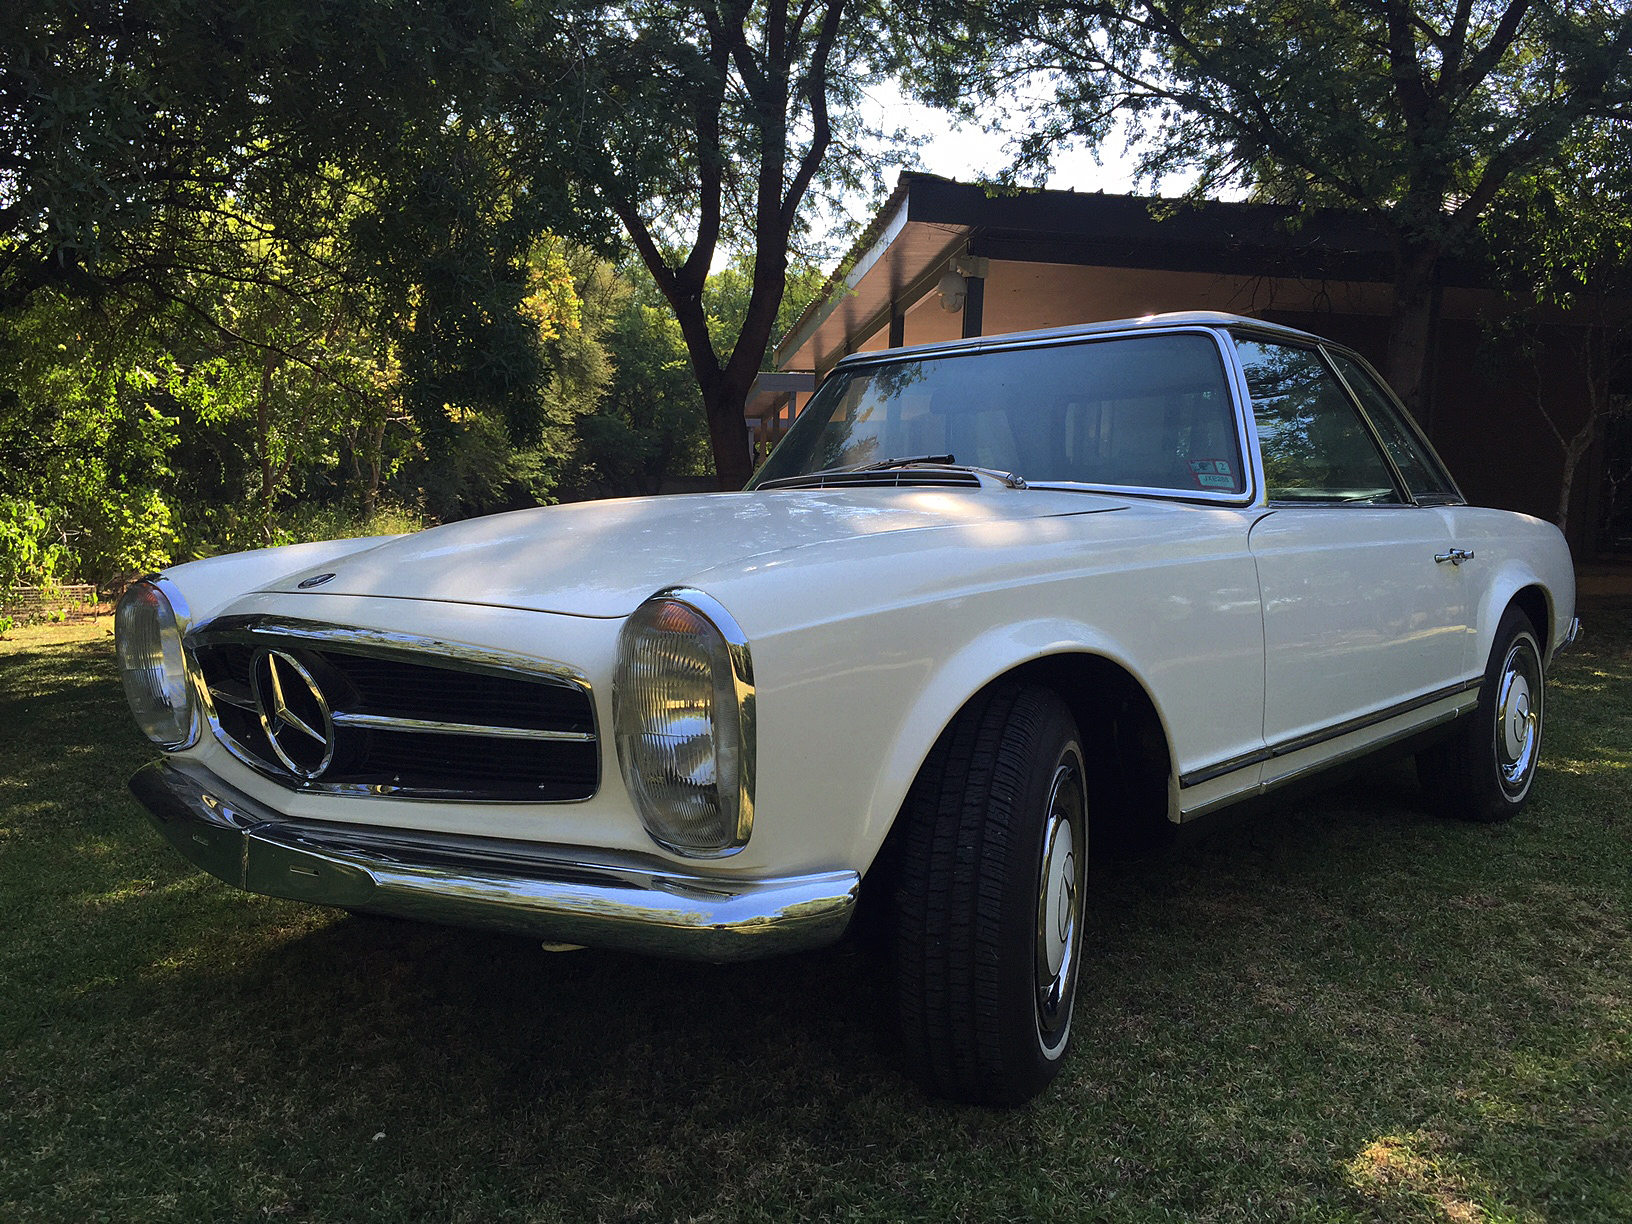 1968 Mercedes 280SL Pagoda - Exclusive to Vintage Car Importers